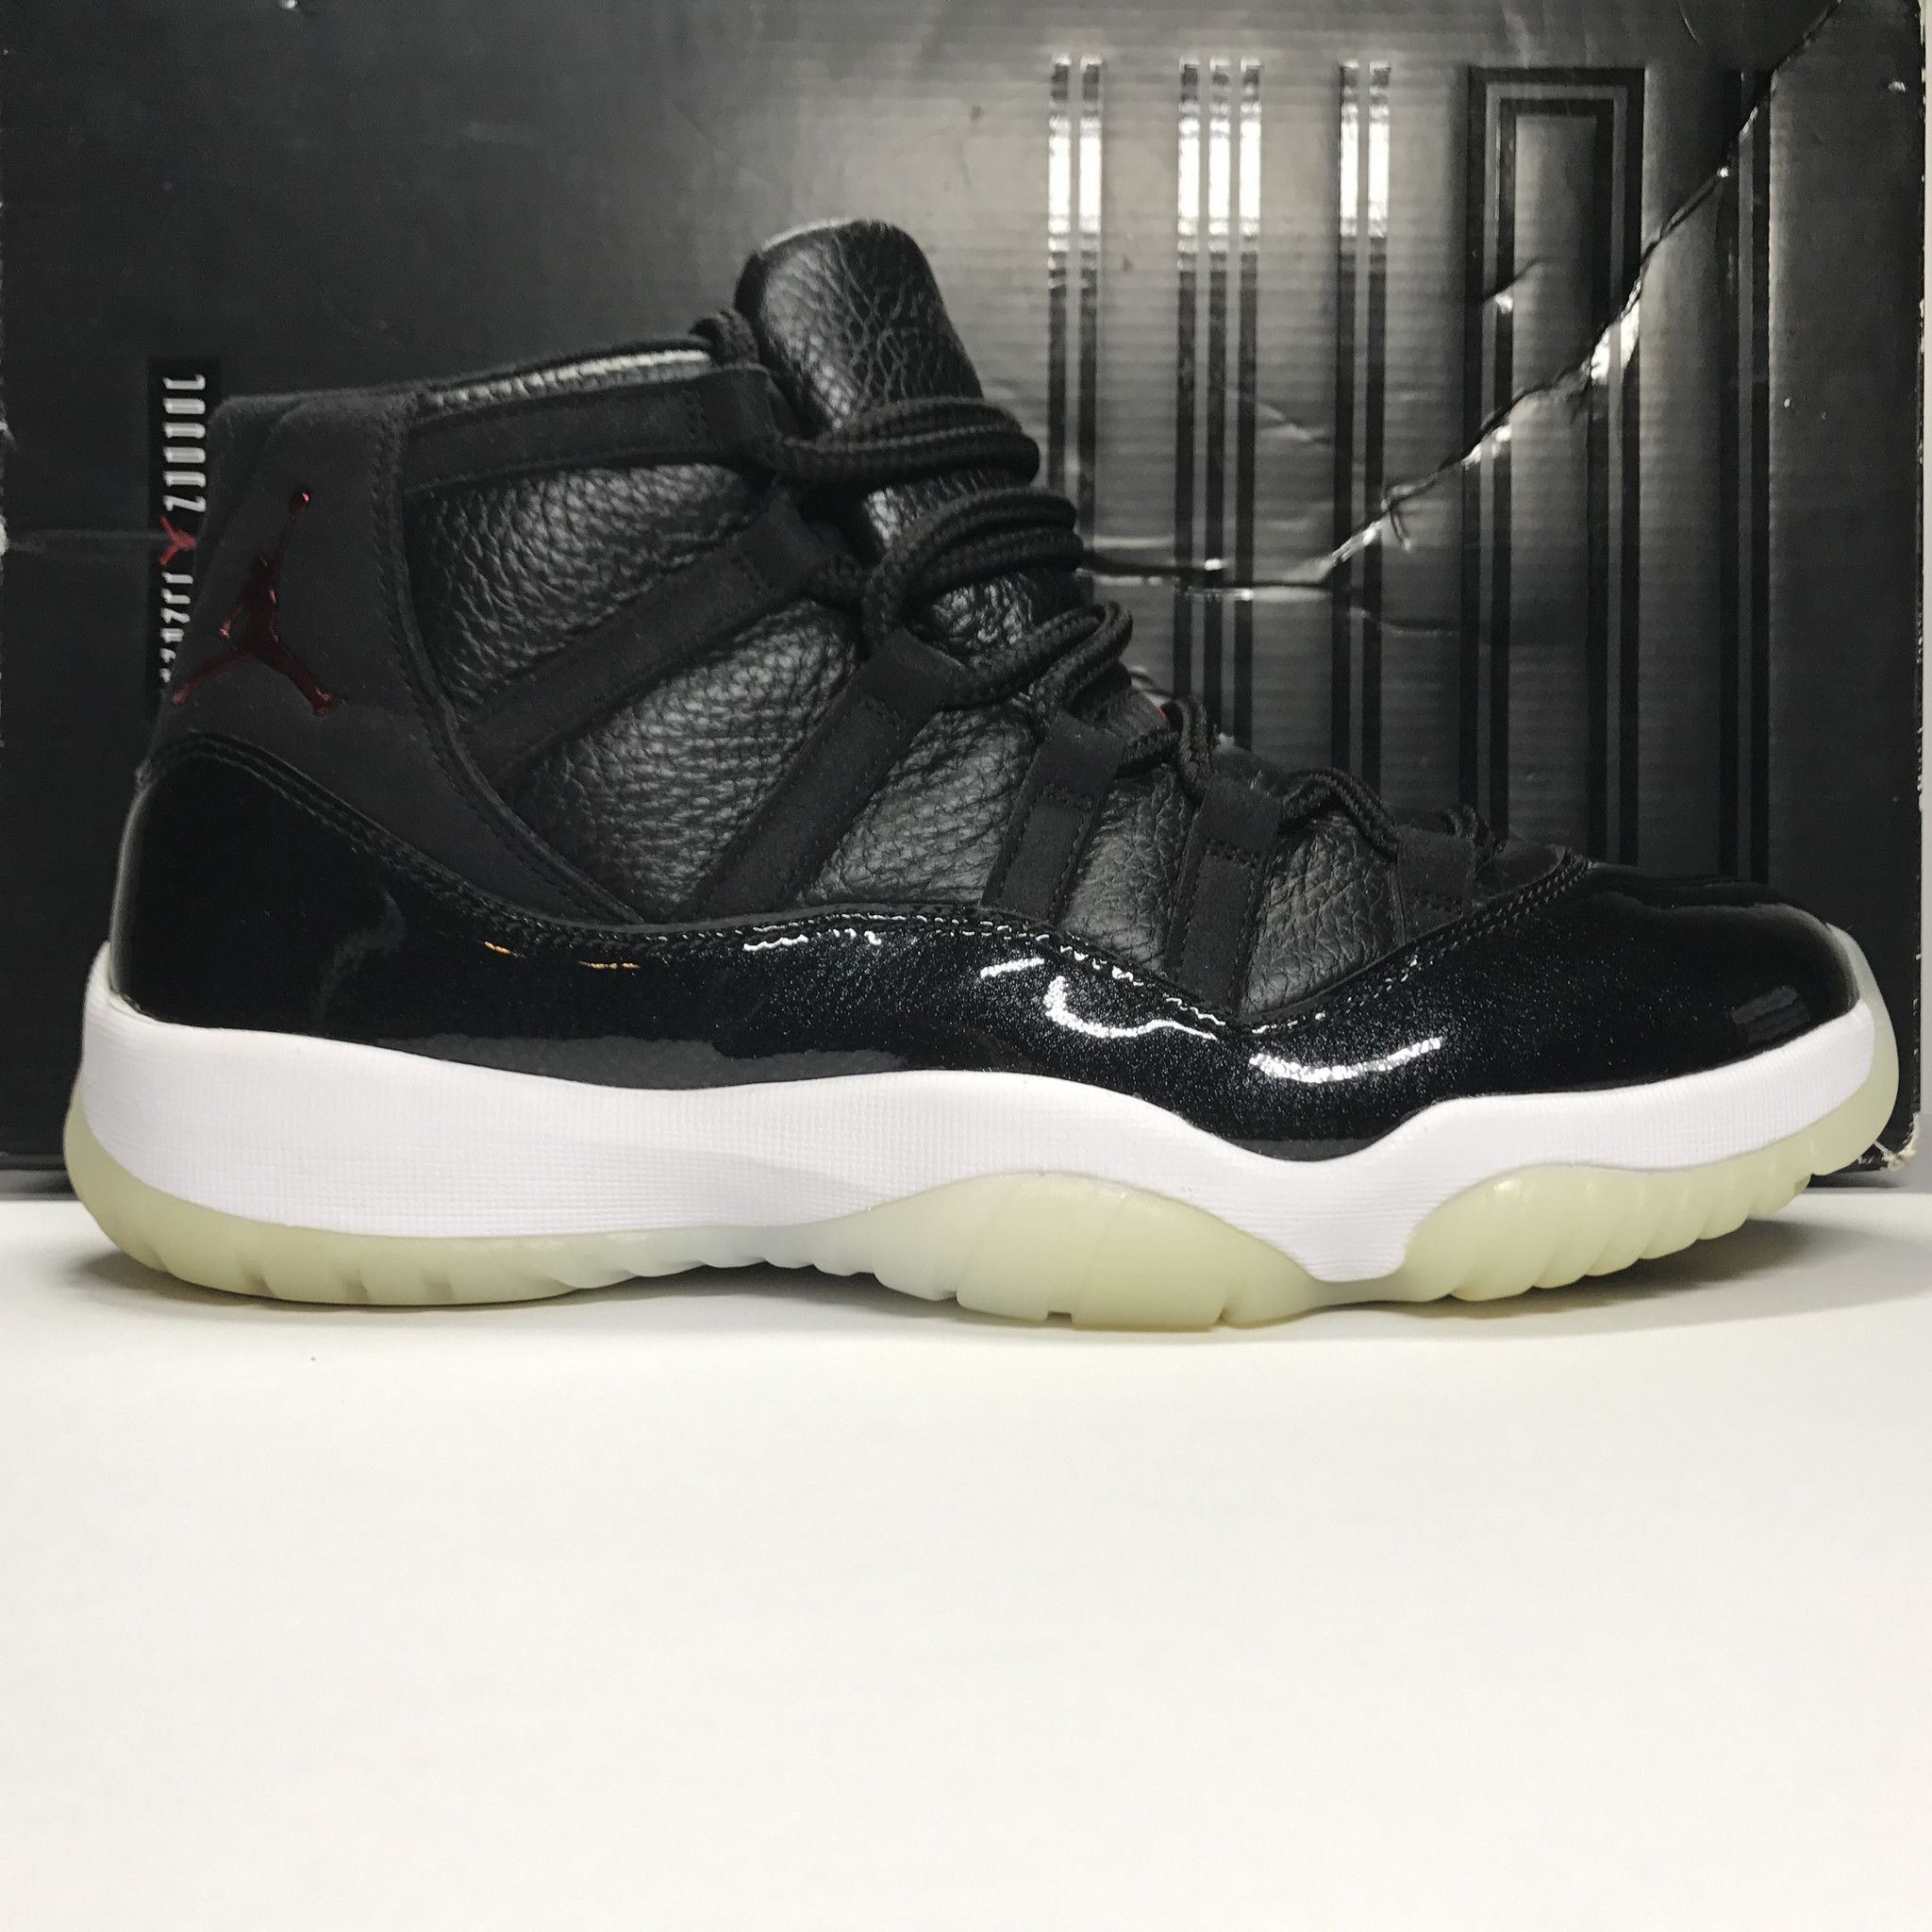 best sneakers eb260 340f5 Nike Air Jordan 11 XI Retro 72-10 Size 9.5